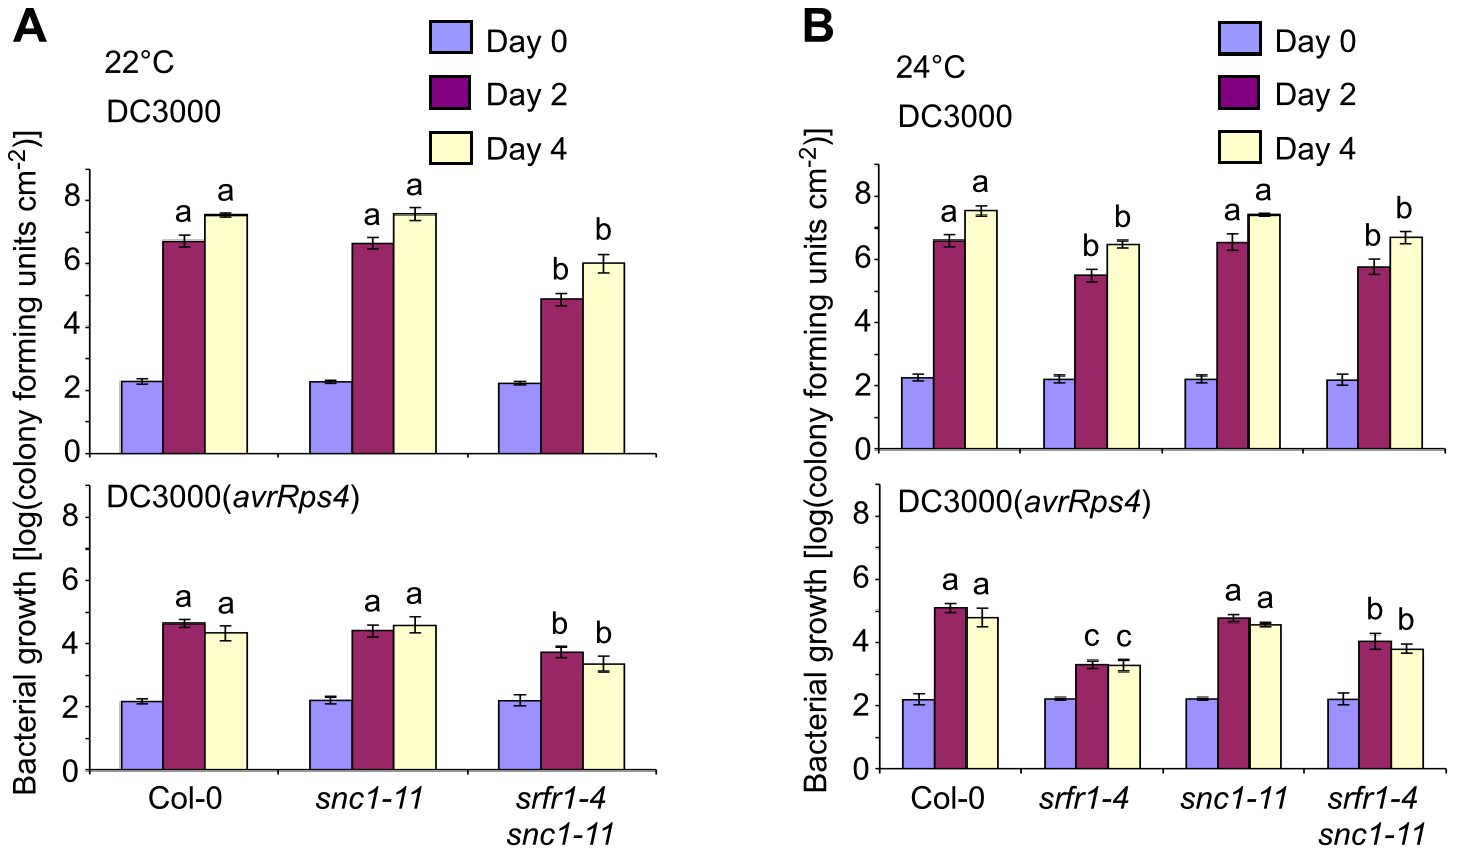 Phenotypically normal <i>srfr1-4 snc1-11</i> double mutants show enhanced basal defense and AvrRps4-triggered immunity.